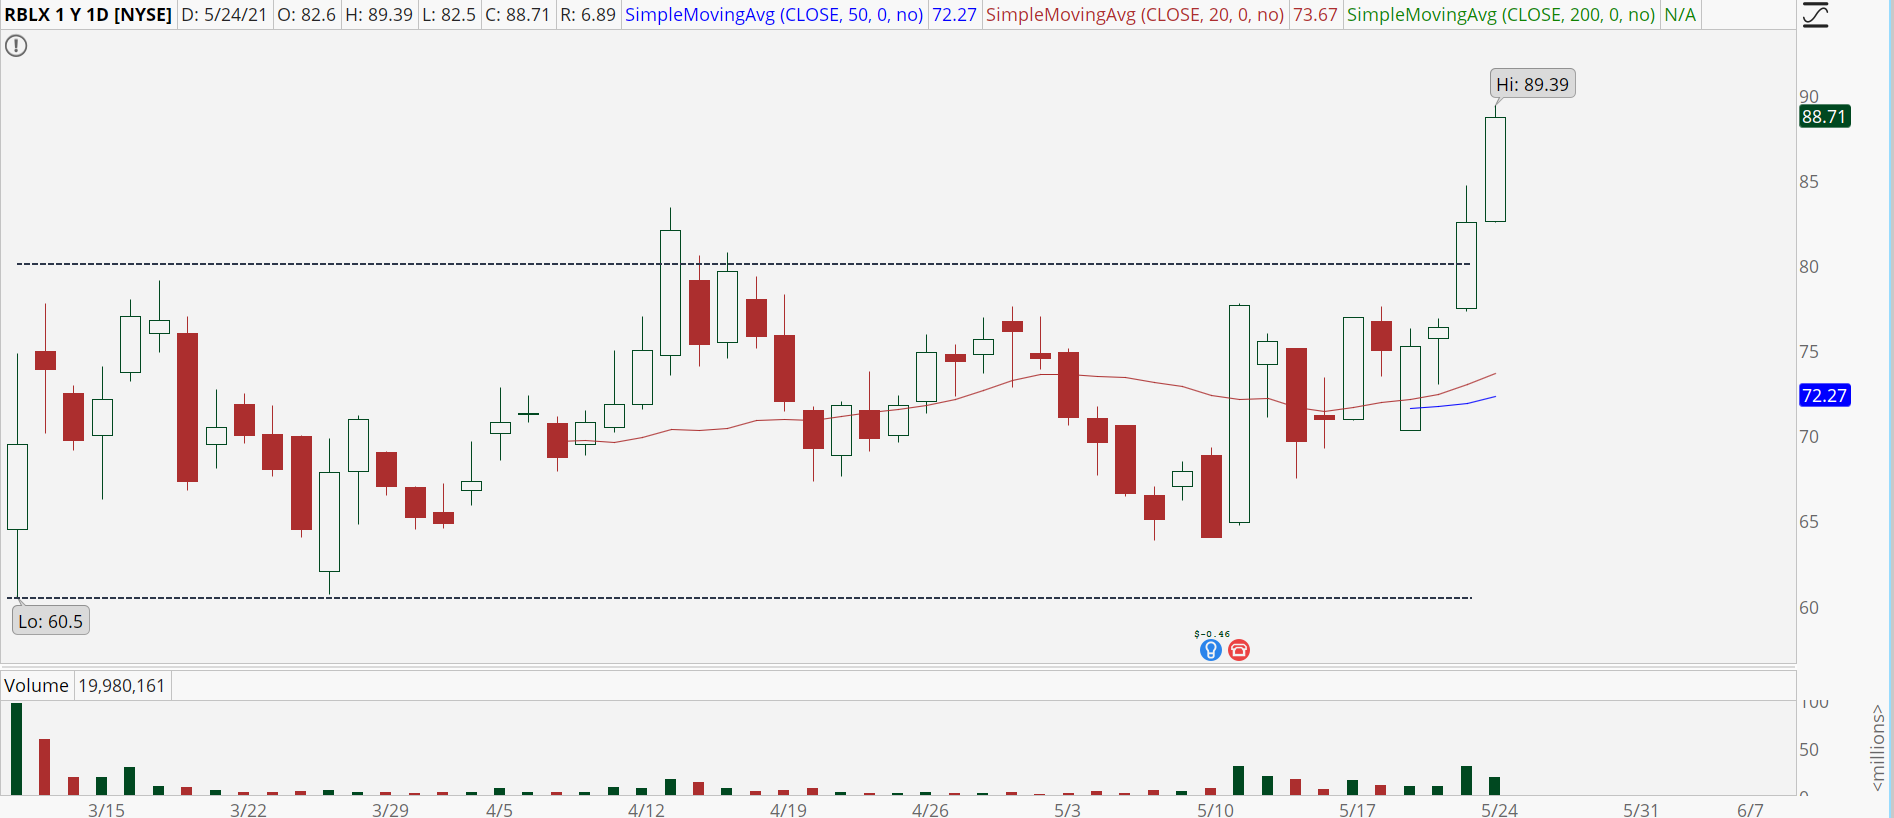 Roblox (RBLX) stock with bullish breakout